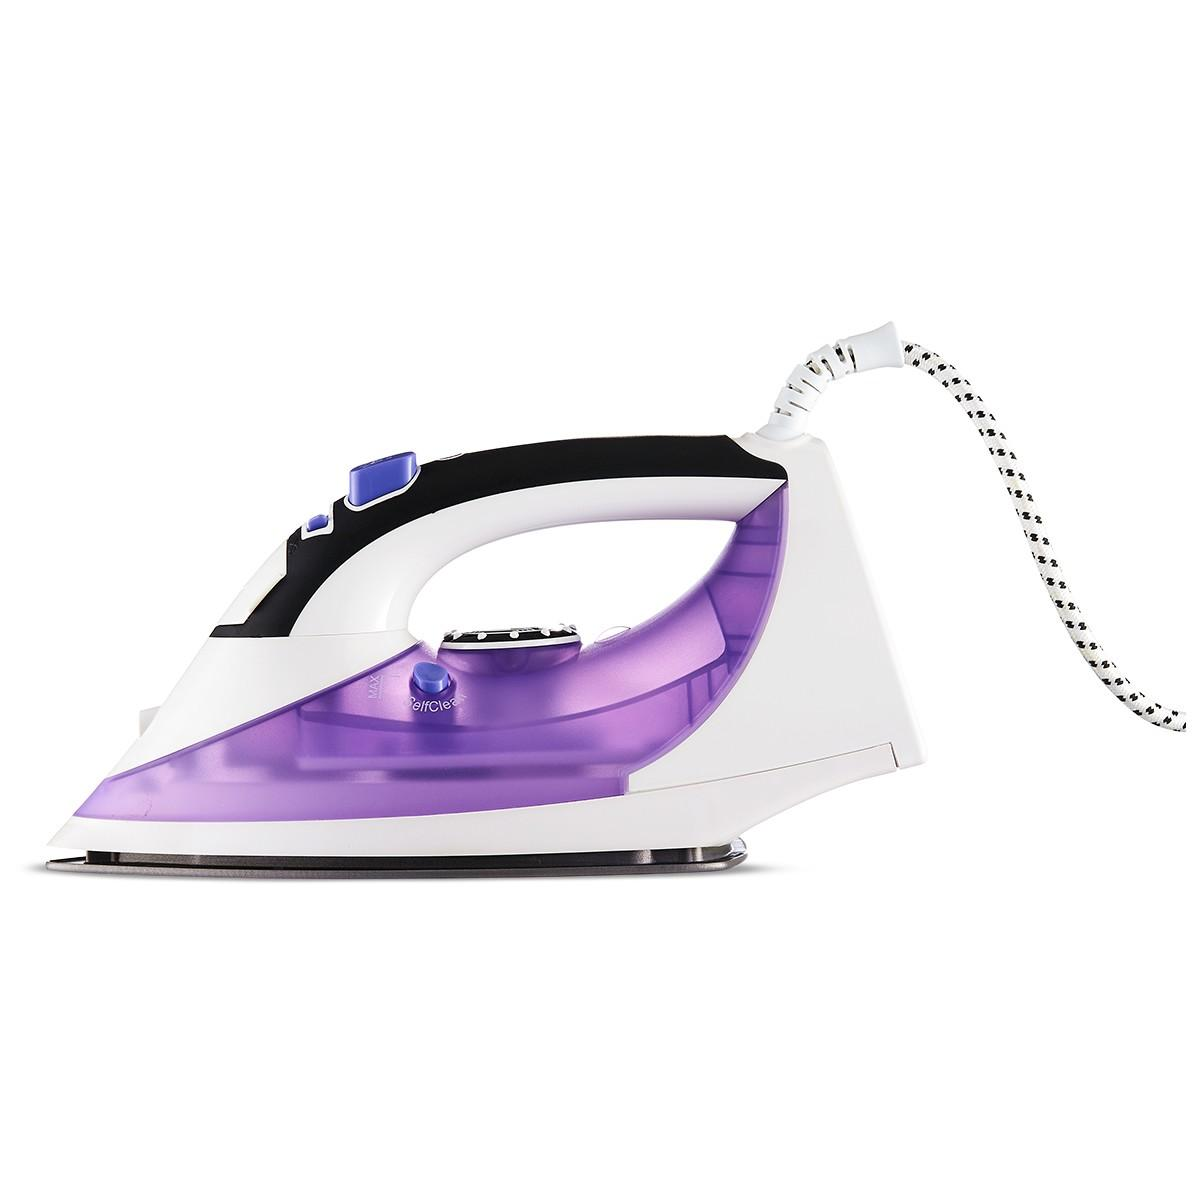 Brilliant Basics Steam Iron